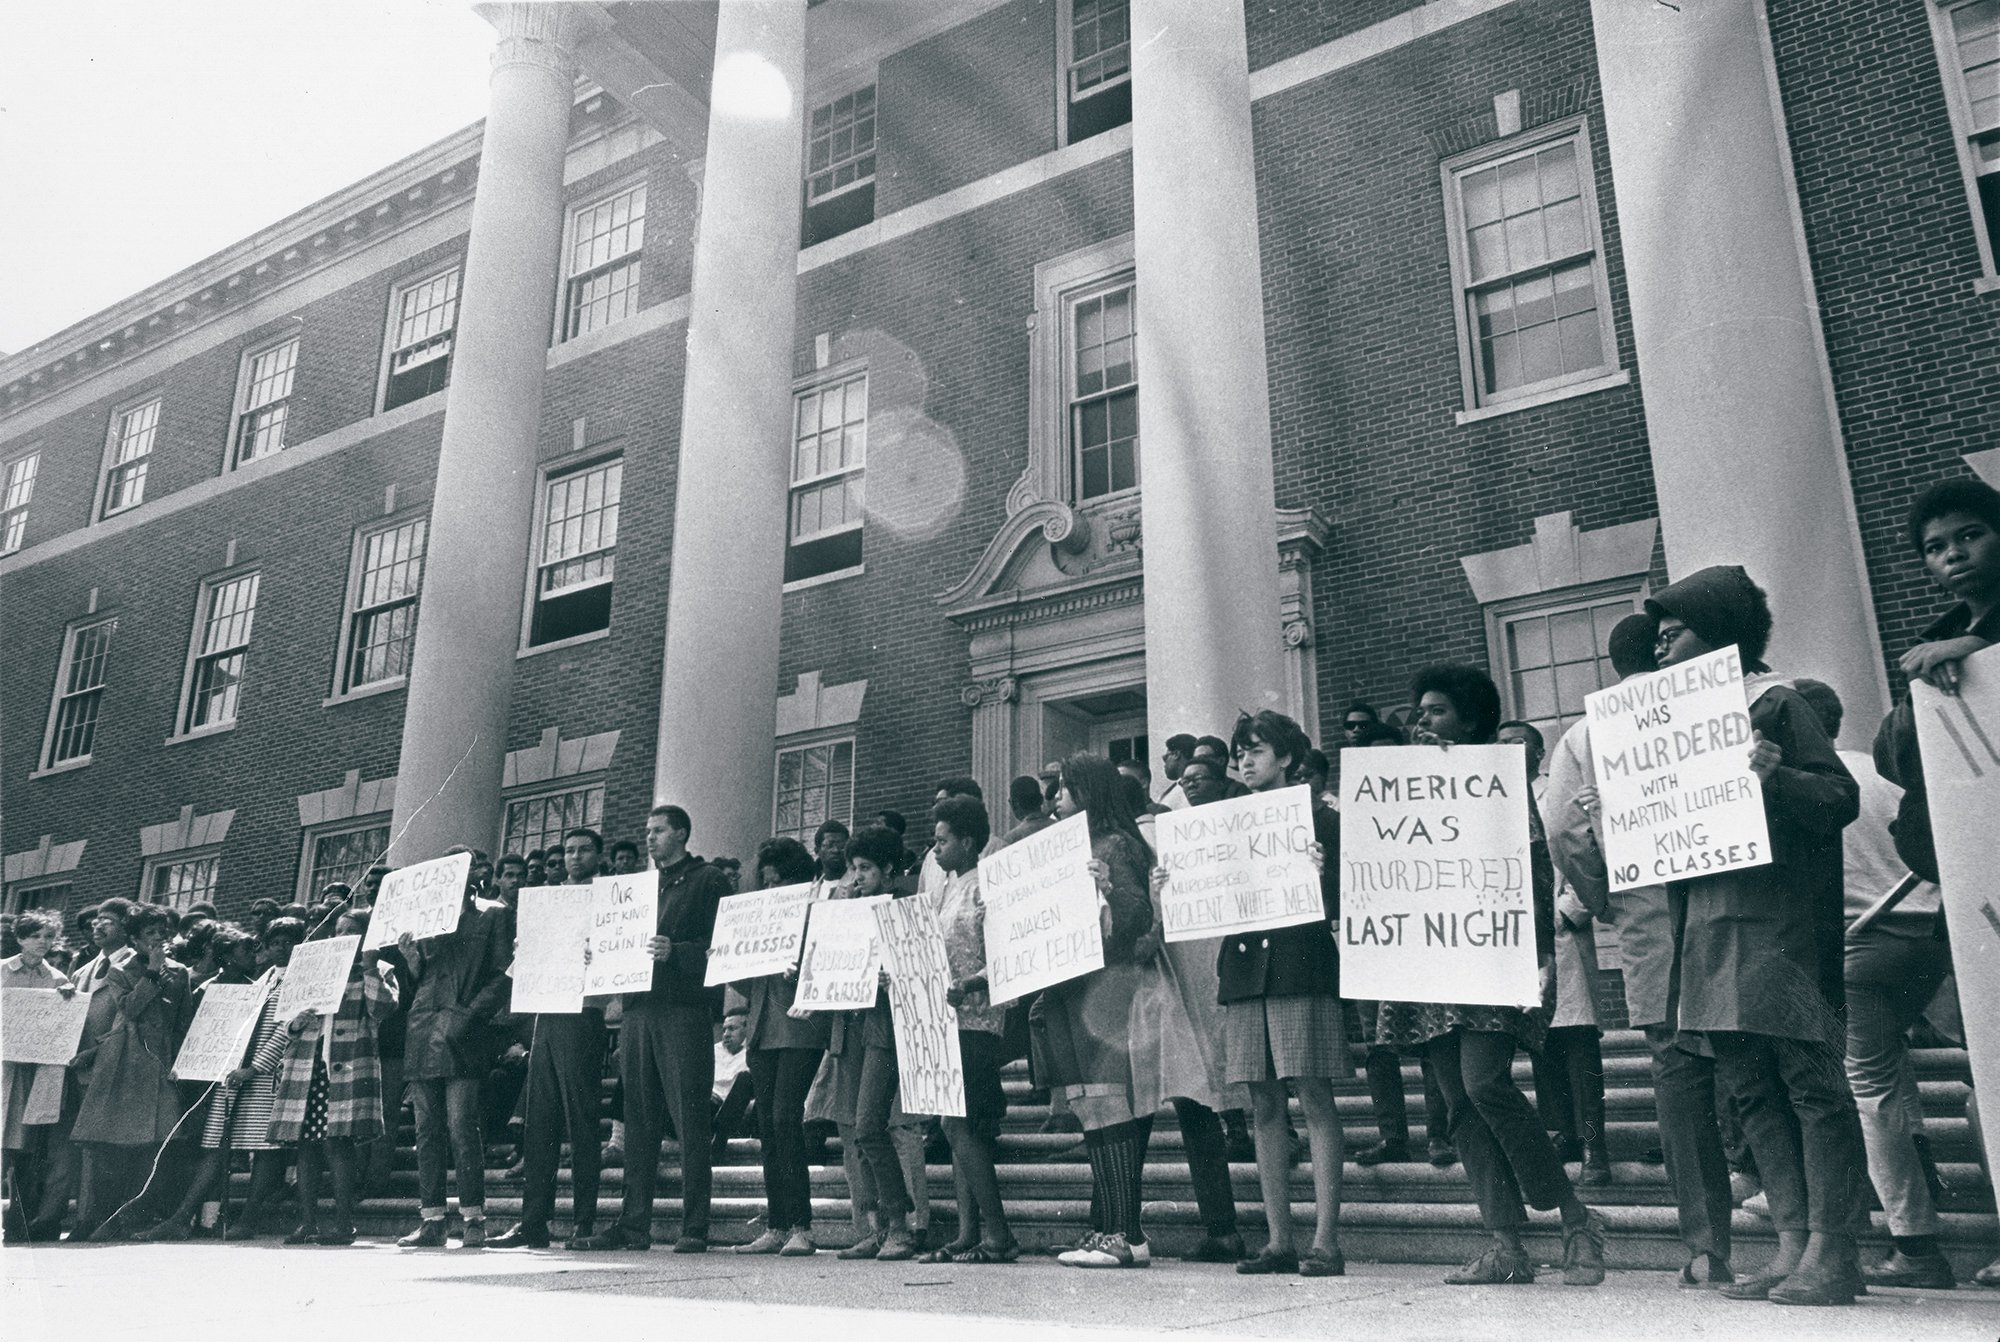 DC erupted after Martin Luther King Jr.'s assassination. Protesters on the campus of Howard University on April 5, 1968. Photograph of protestors by Washington Post, Reprinted with Permission of DC Public Library/Star Collection.